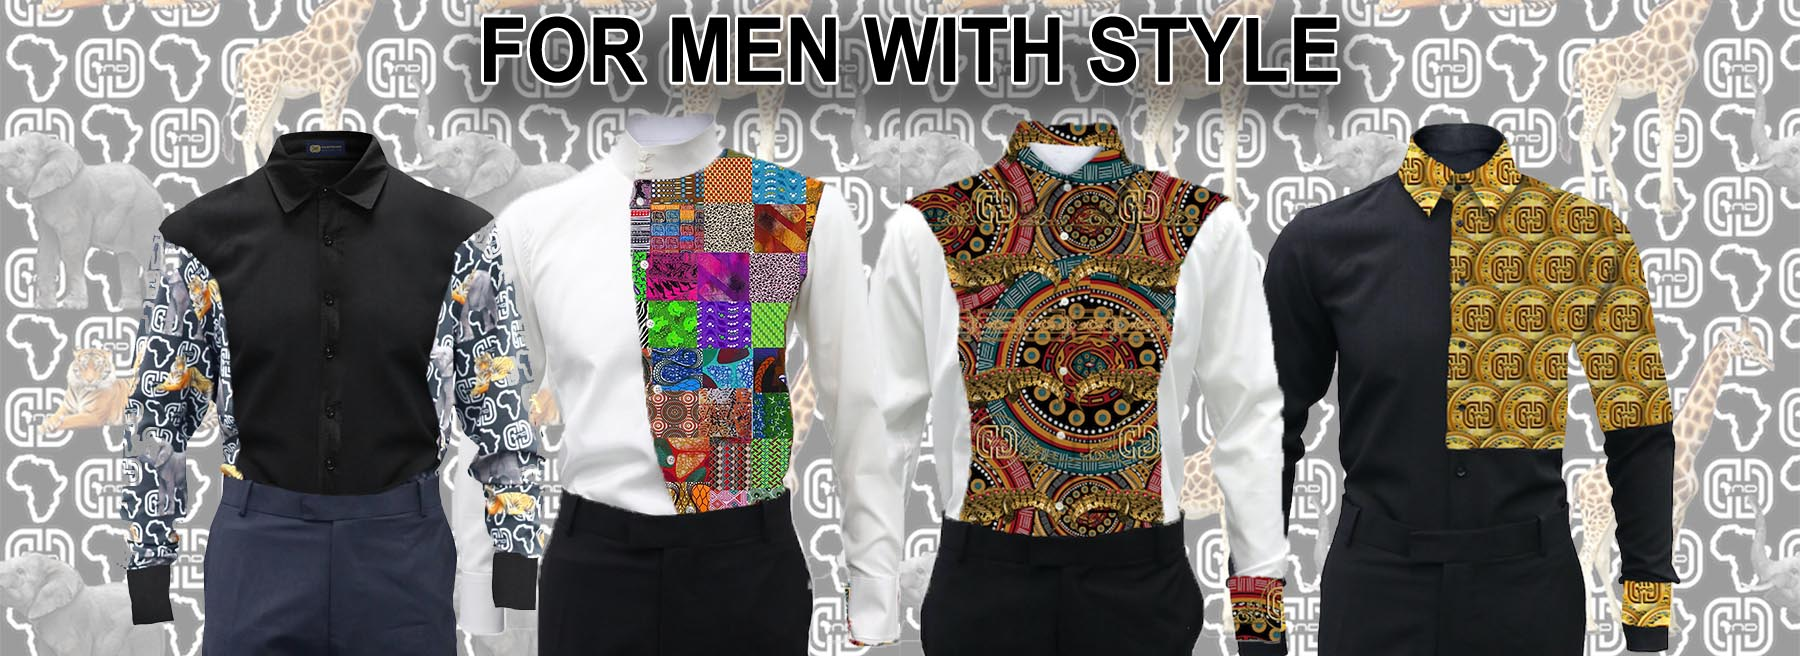 WY Men's Shirts | Stylish African Shirts for Men